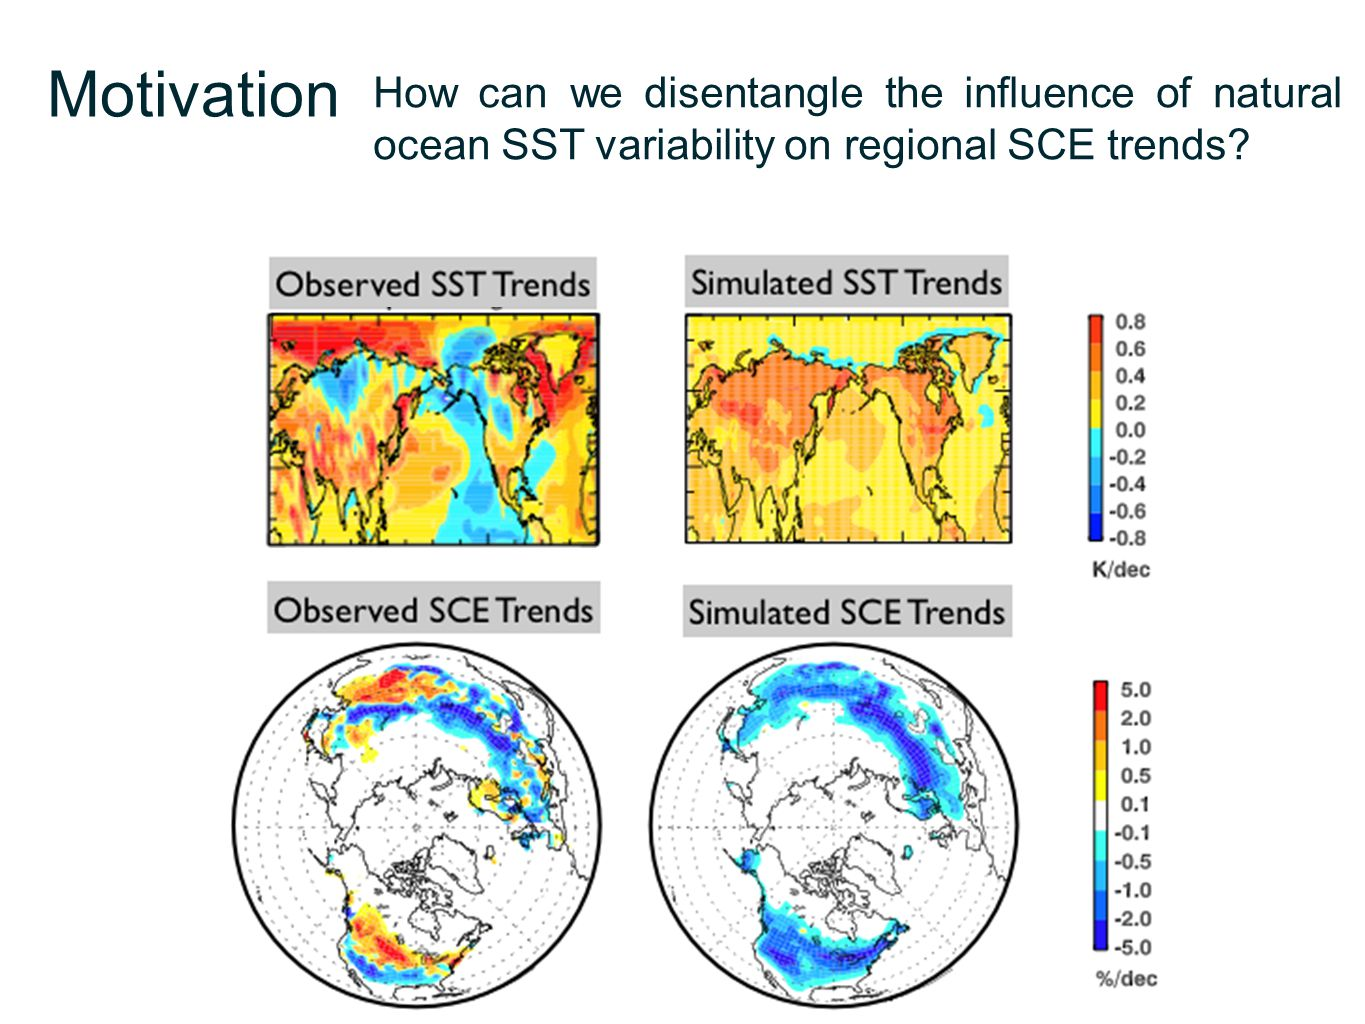 Motivation How can we disentangle the influence of natural ocean SST variability on regional SCE trends